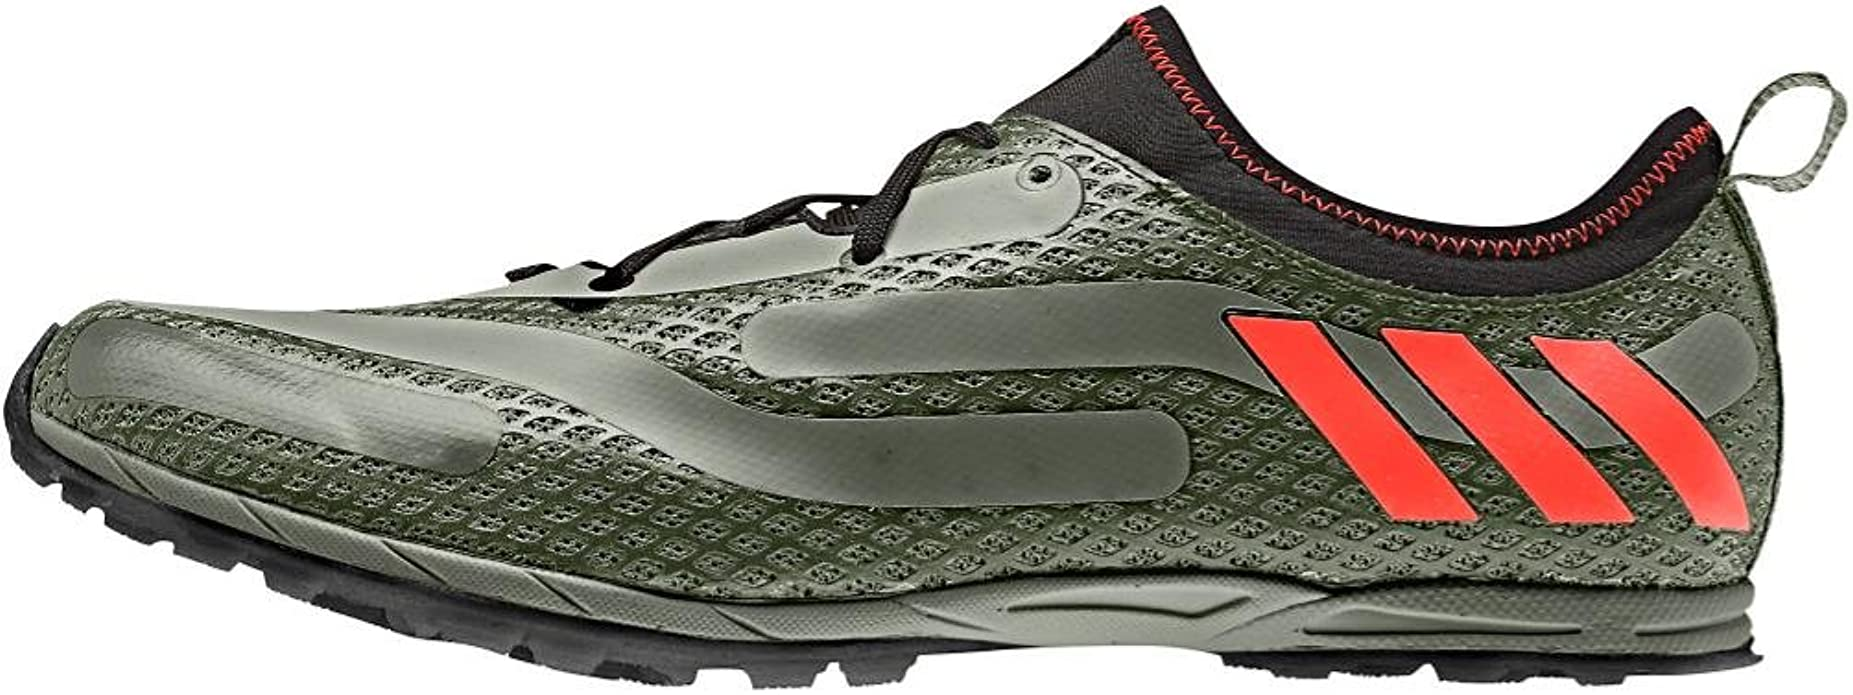 Disfraces A veces Evento  Amazon.com | adidas Men's XCS Spikeless, Green/Red/Black, 7.5 D | Track &  Field & Cross Country